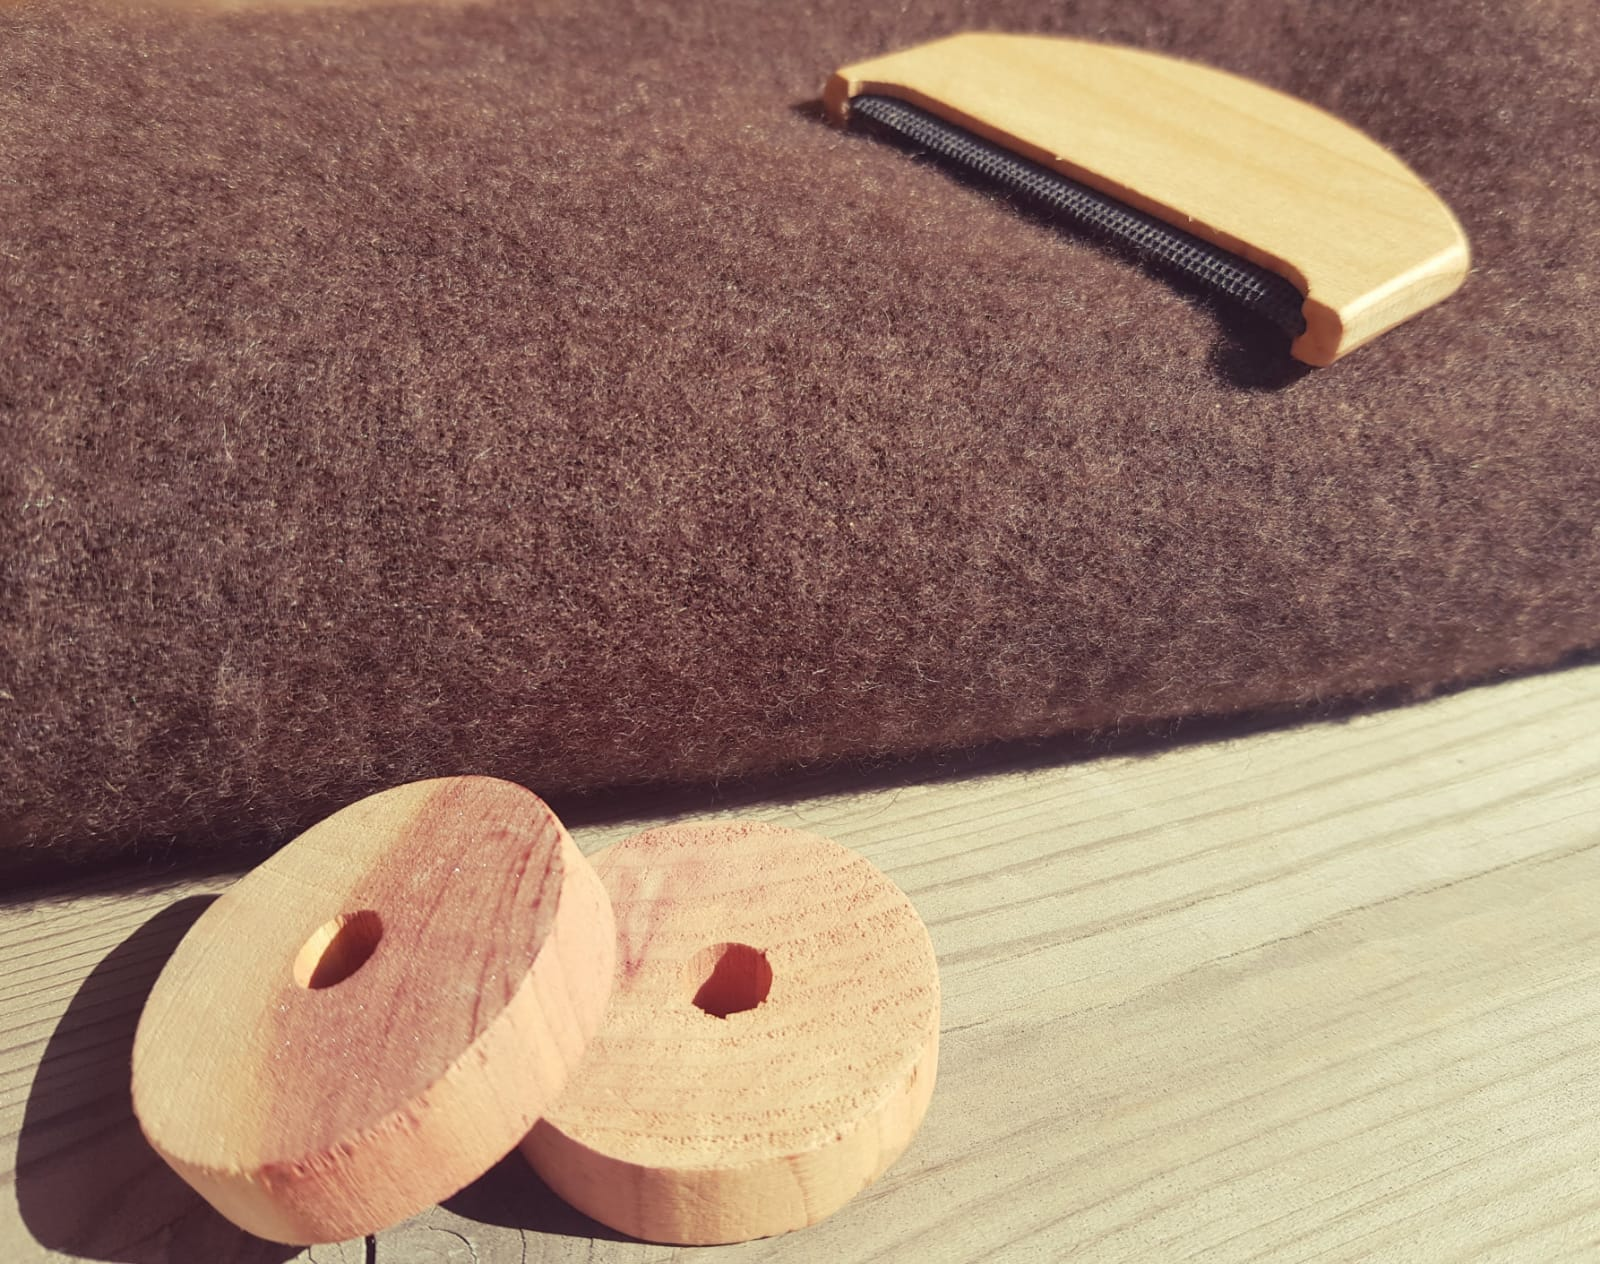 Cider blocks and pilling trimmer by a yak blanket